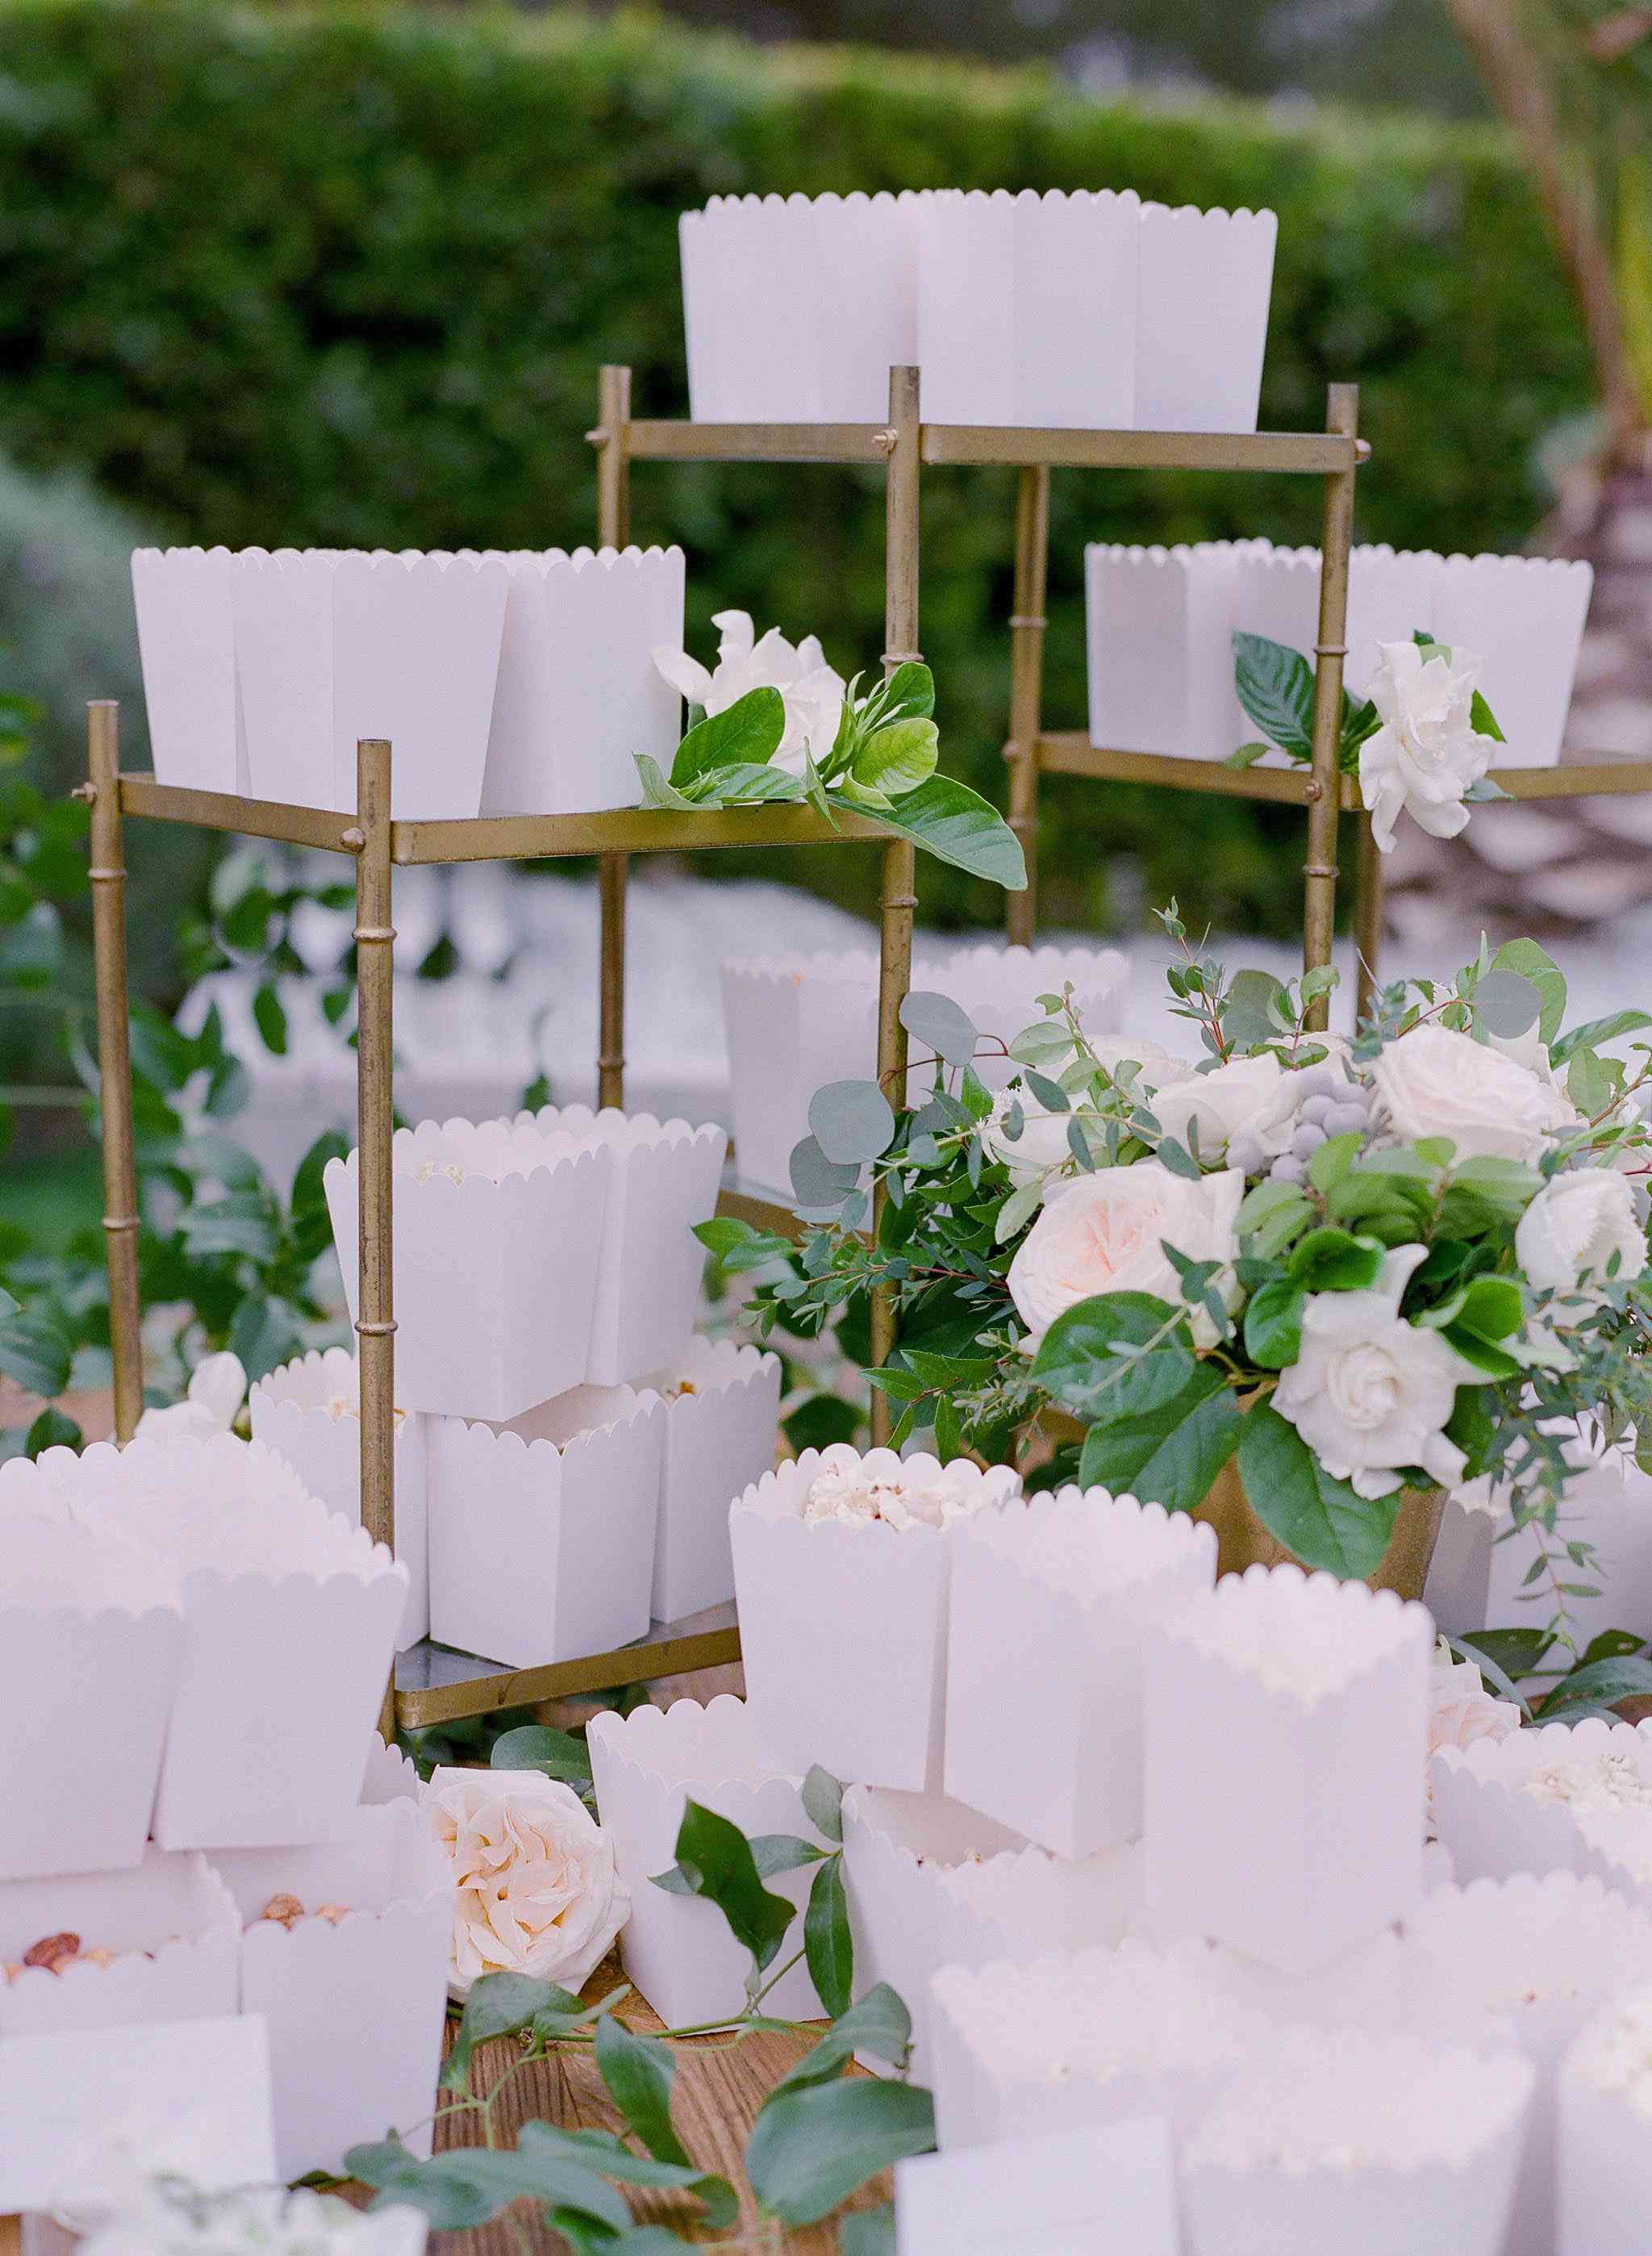 Display with white containers of popcorn decorated with pastel flowers